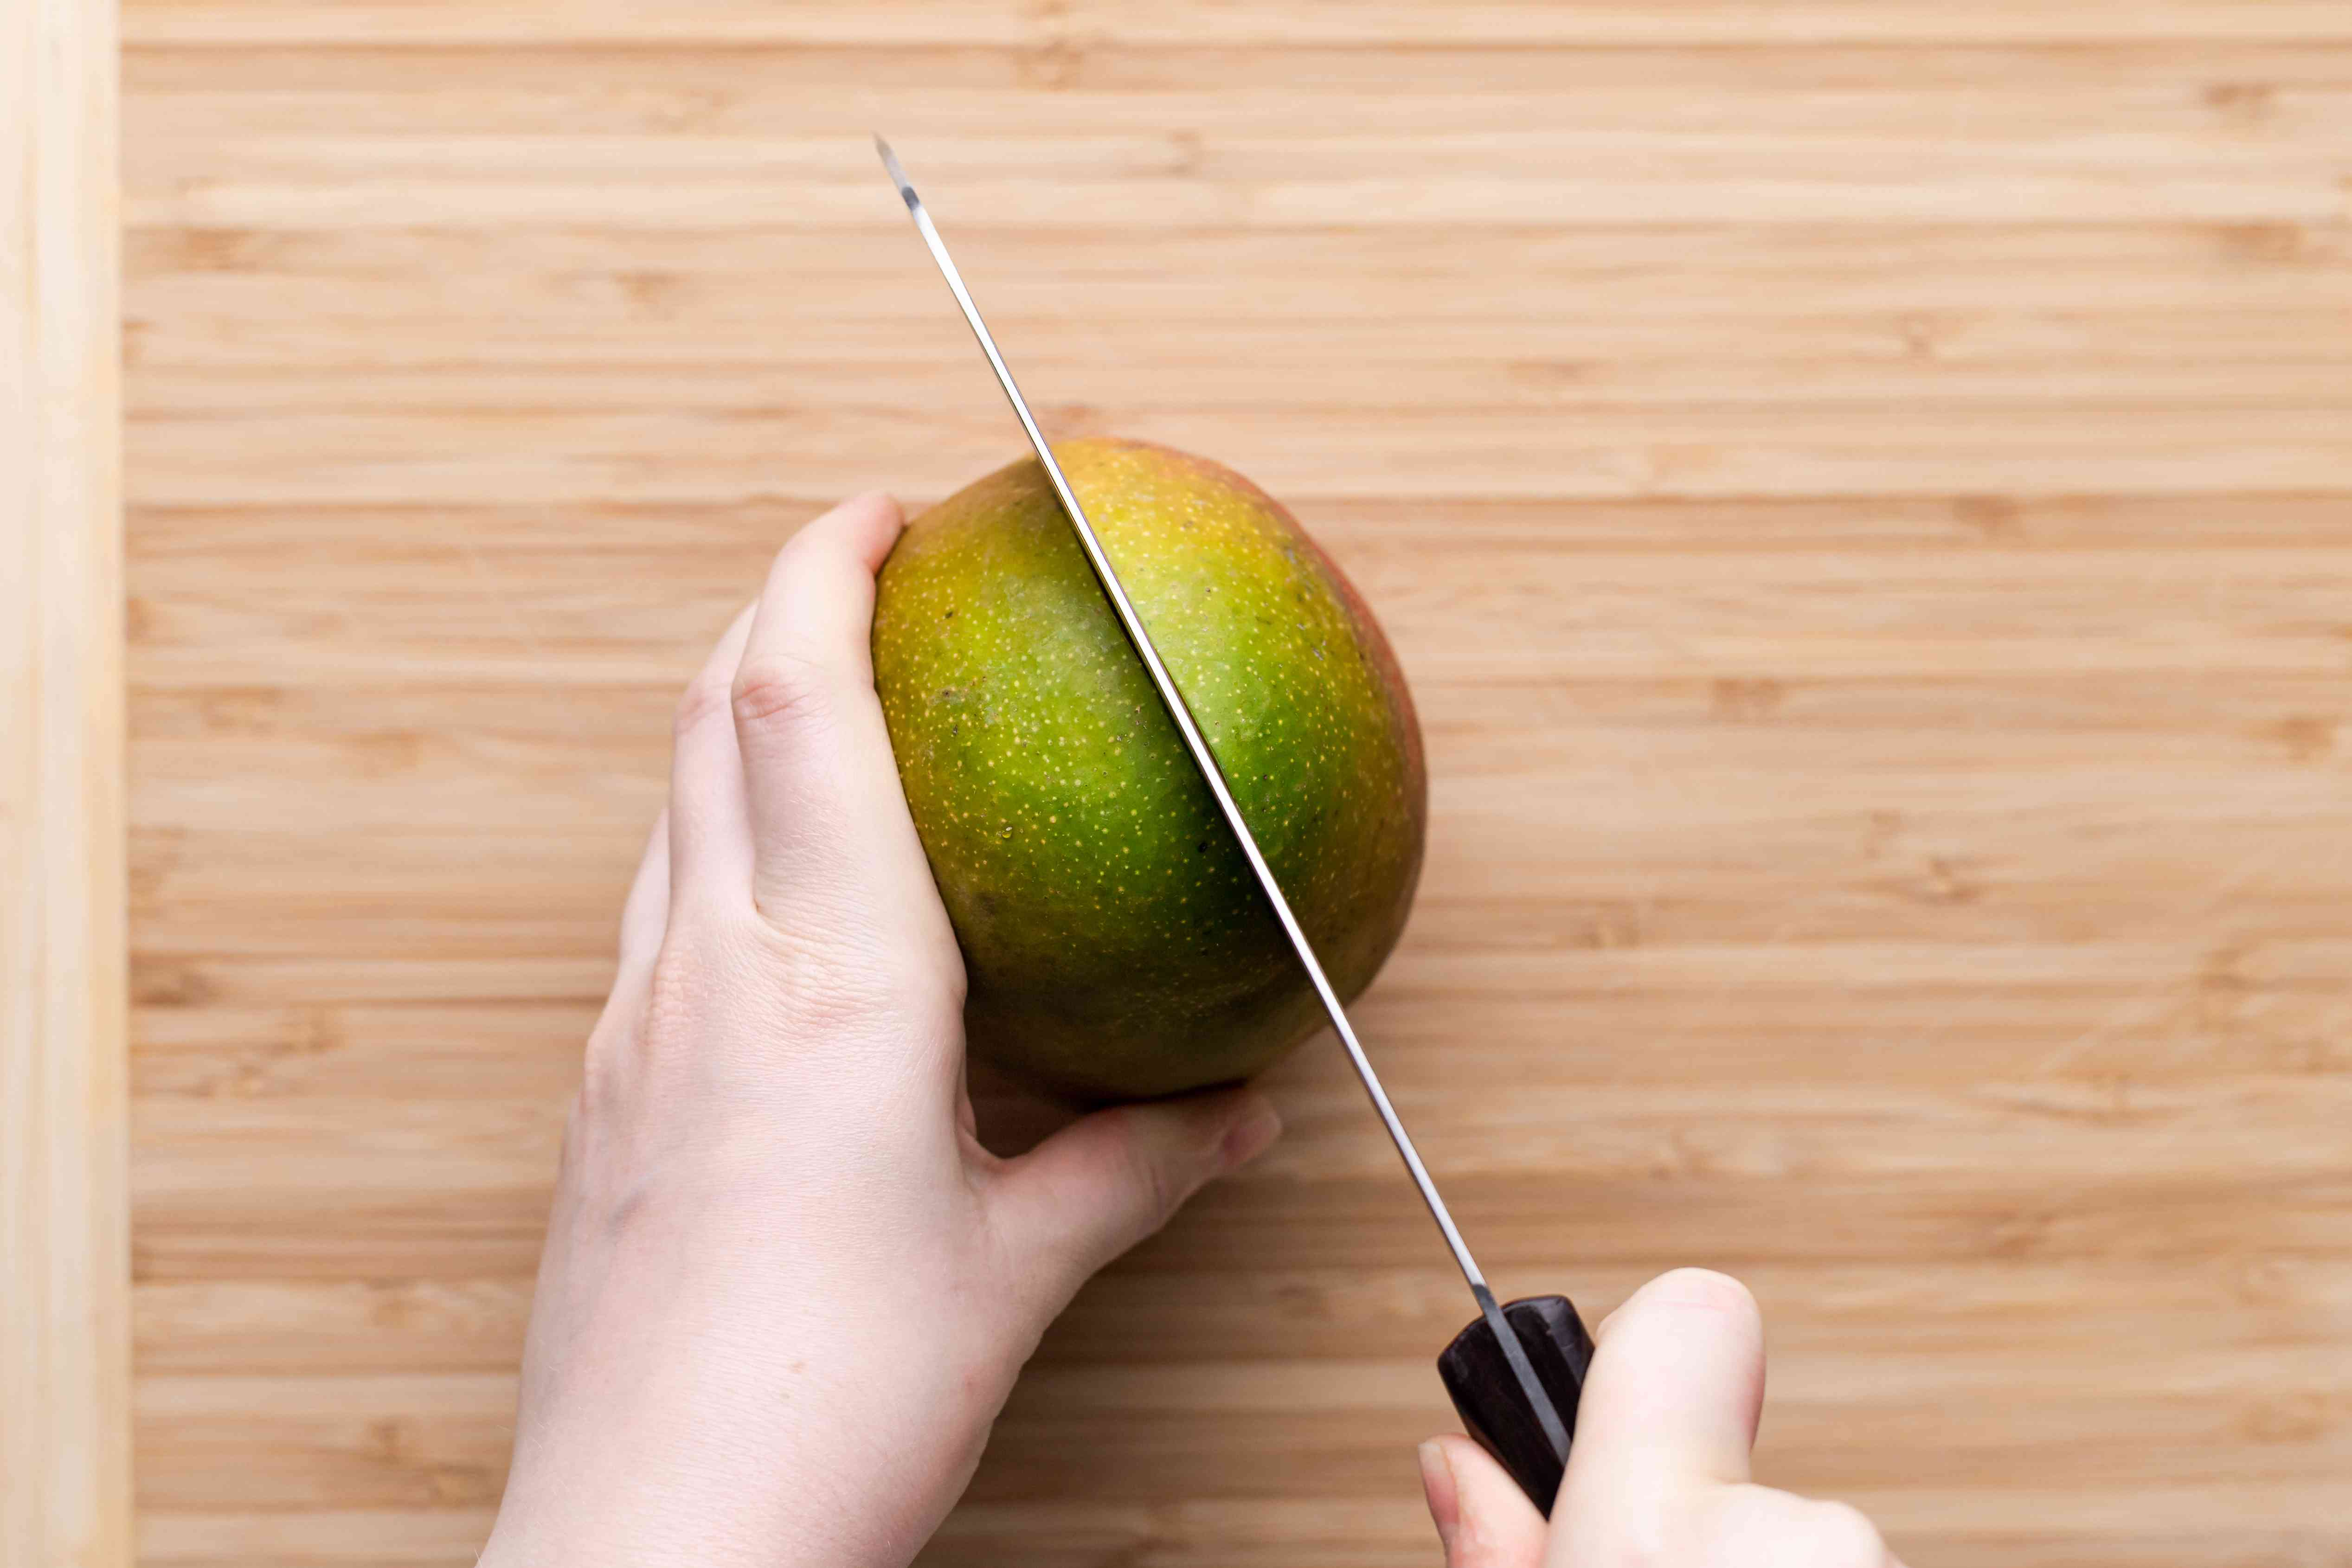 A person holding a knife and cutting into a mango to show how to cut a mango.